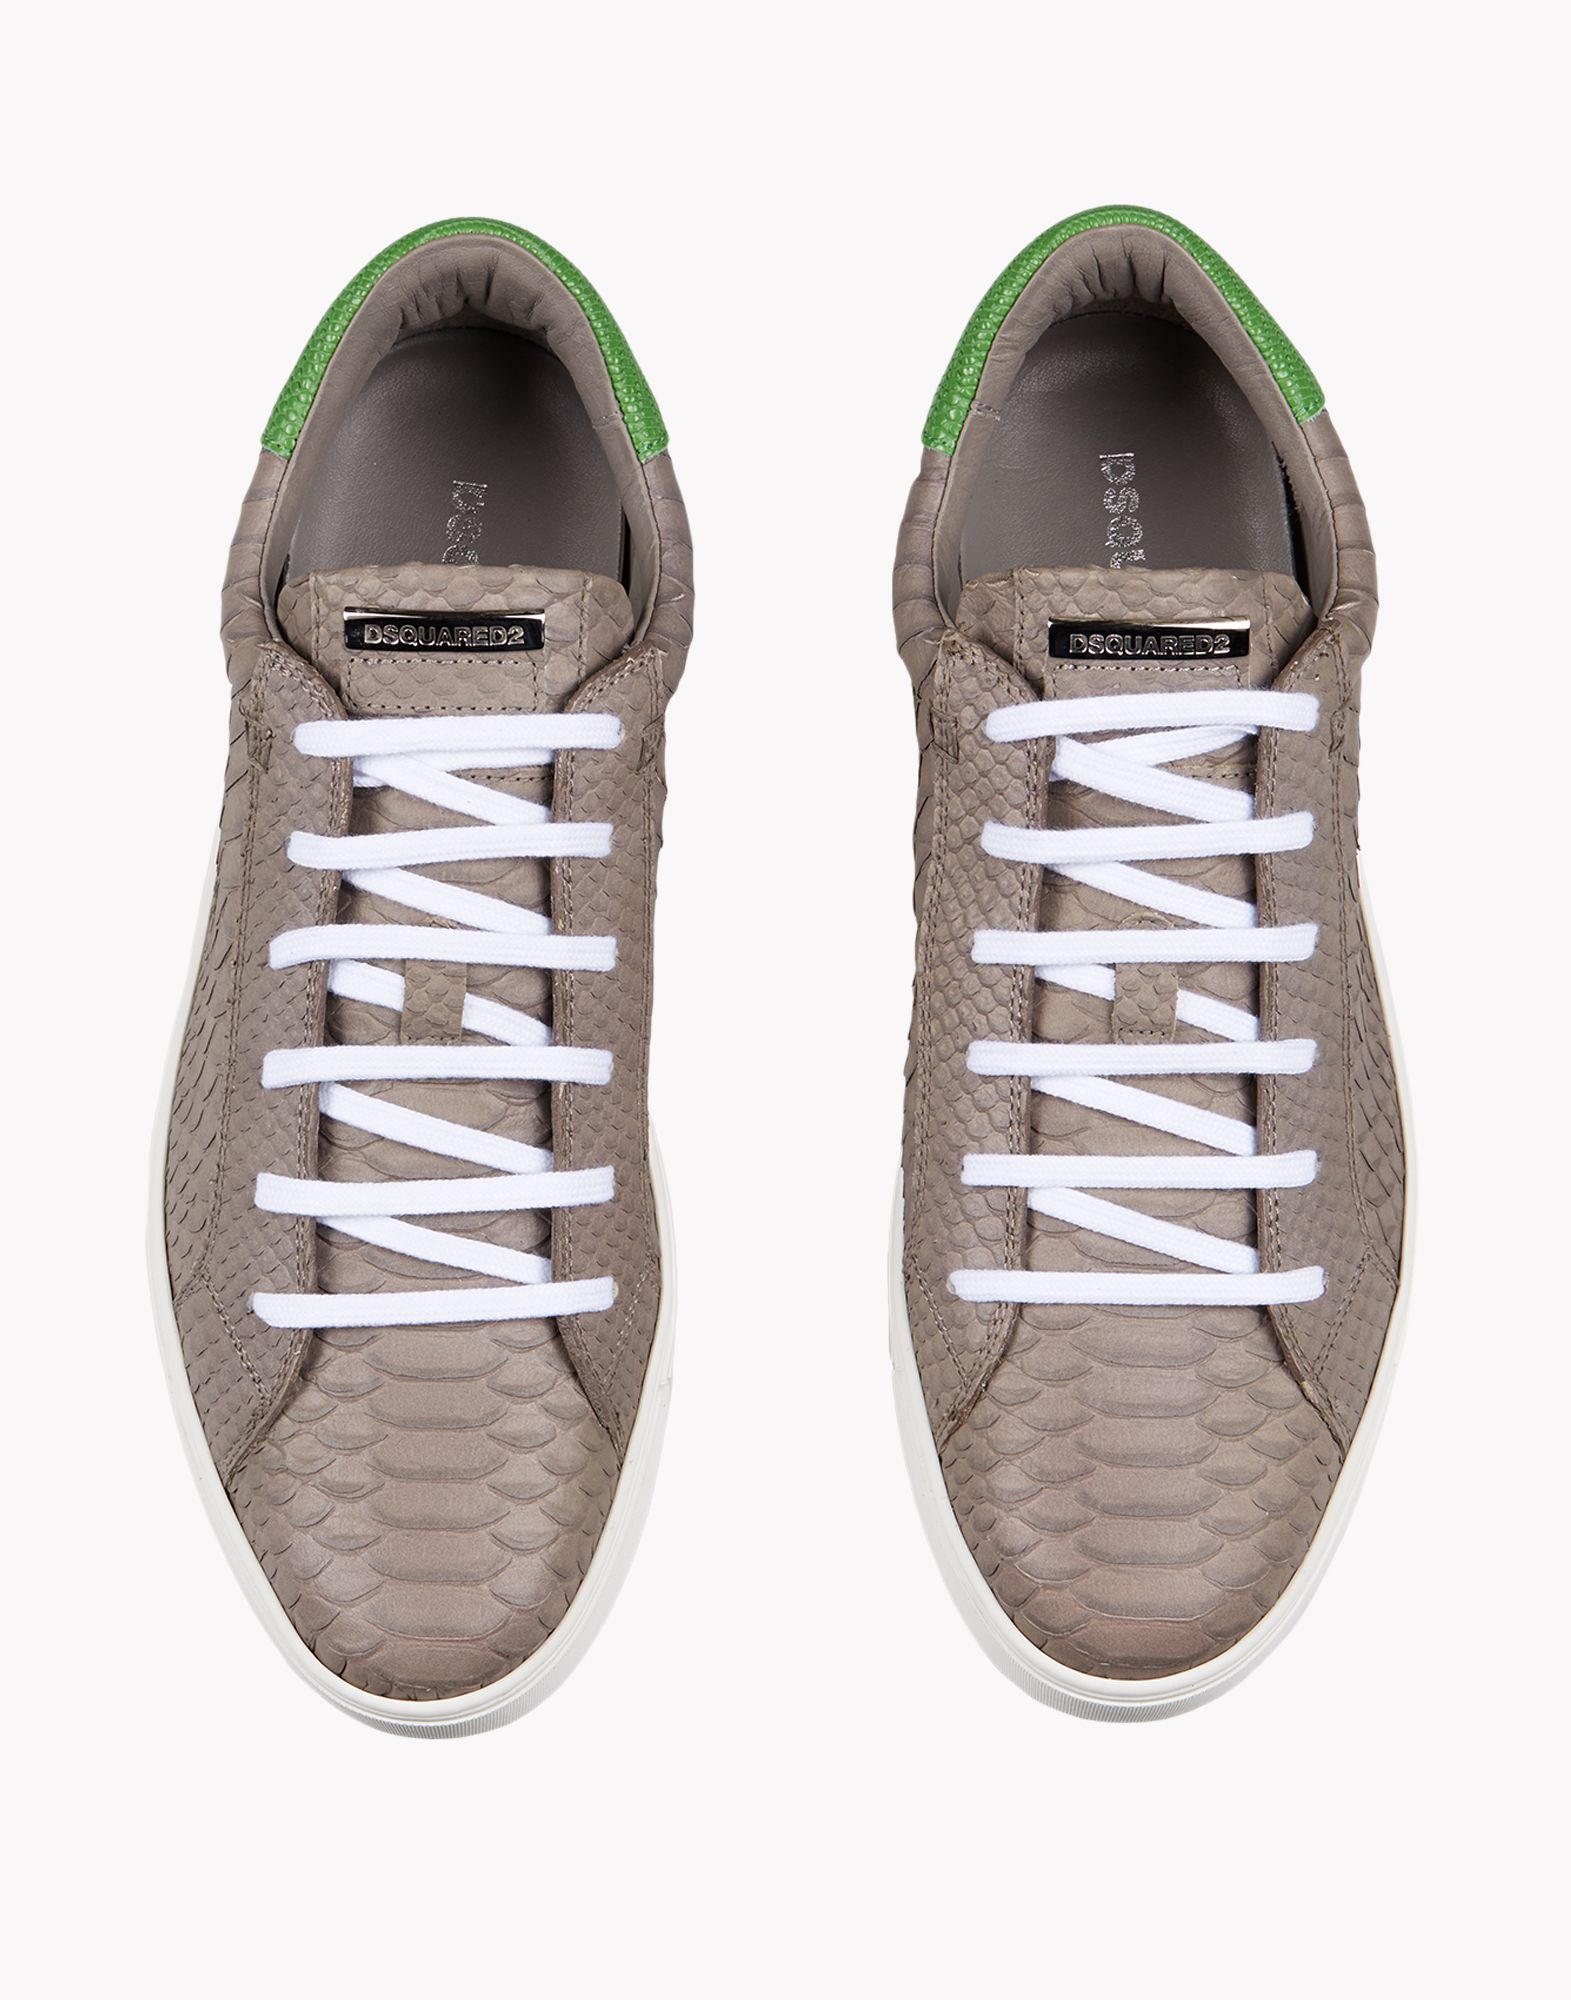 Dsquared2 Tennis Club sneakers from china online sneakernews 2014 unisex for sale discount footlocker pictures FDiXvtJQzD